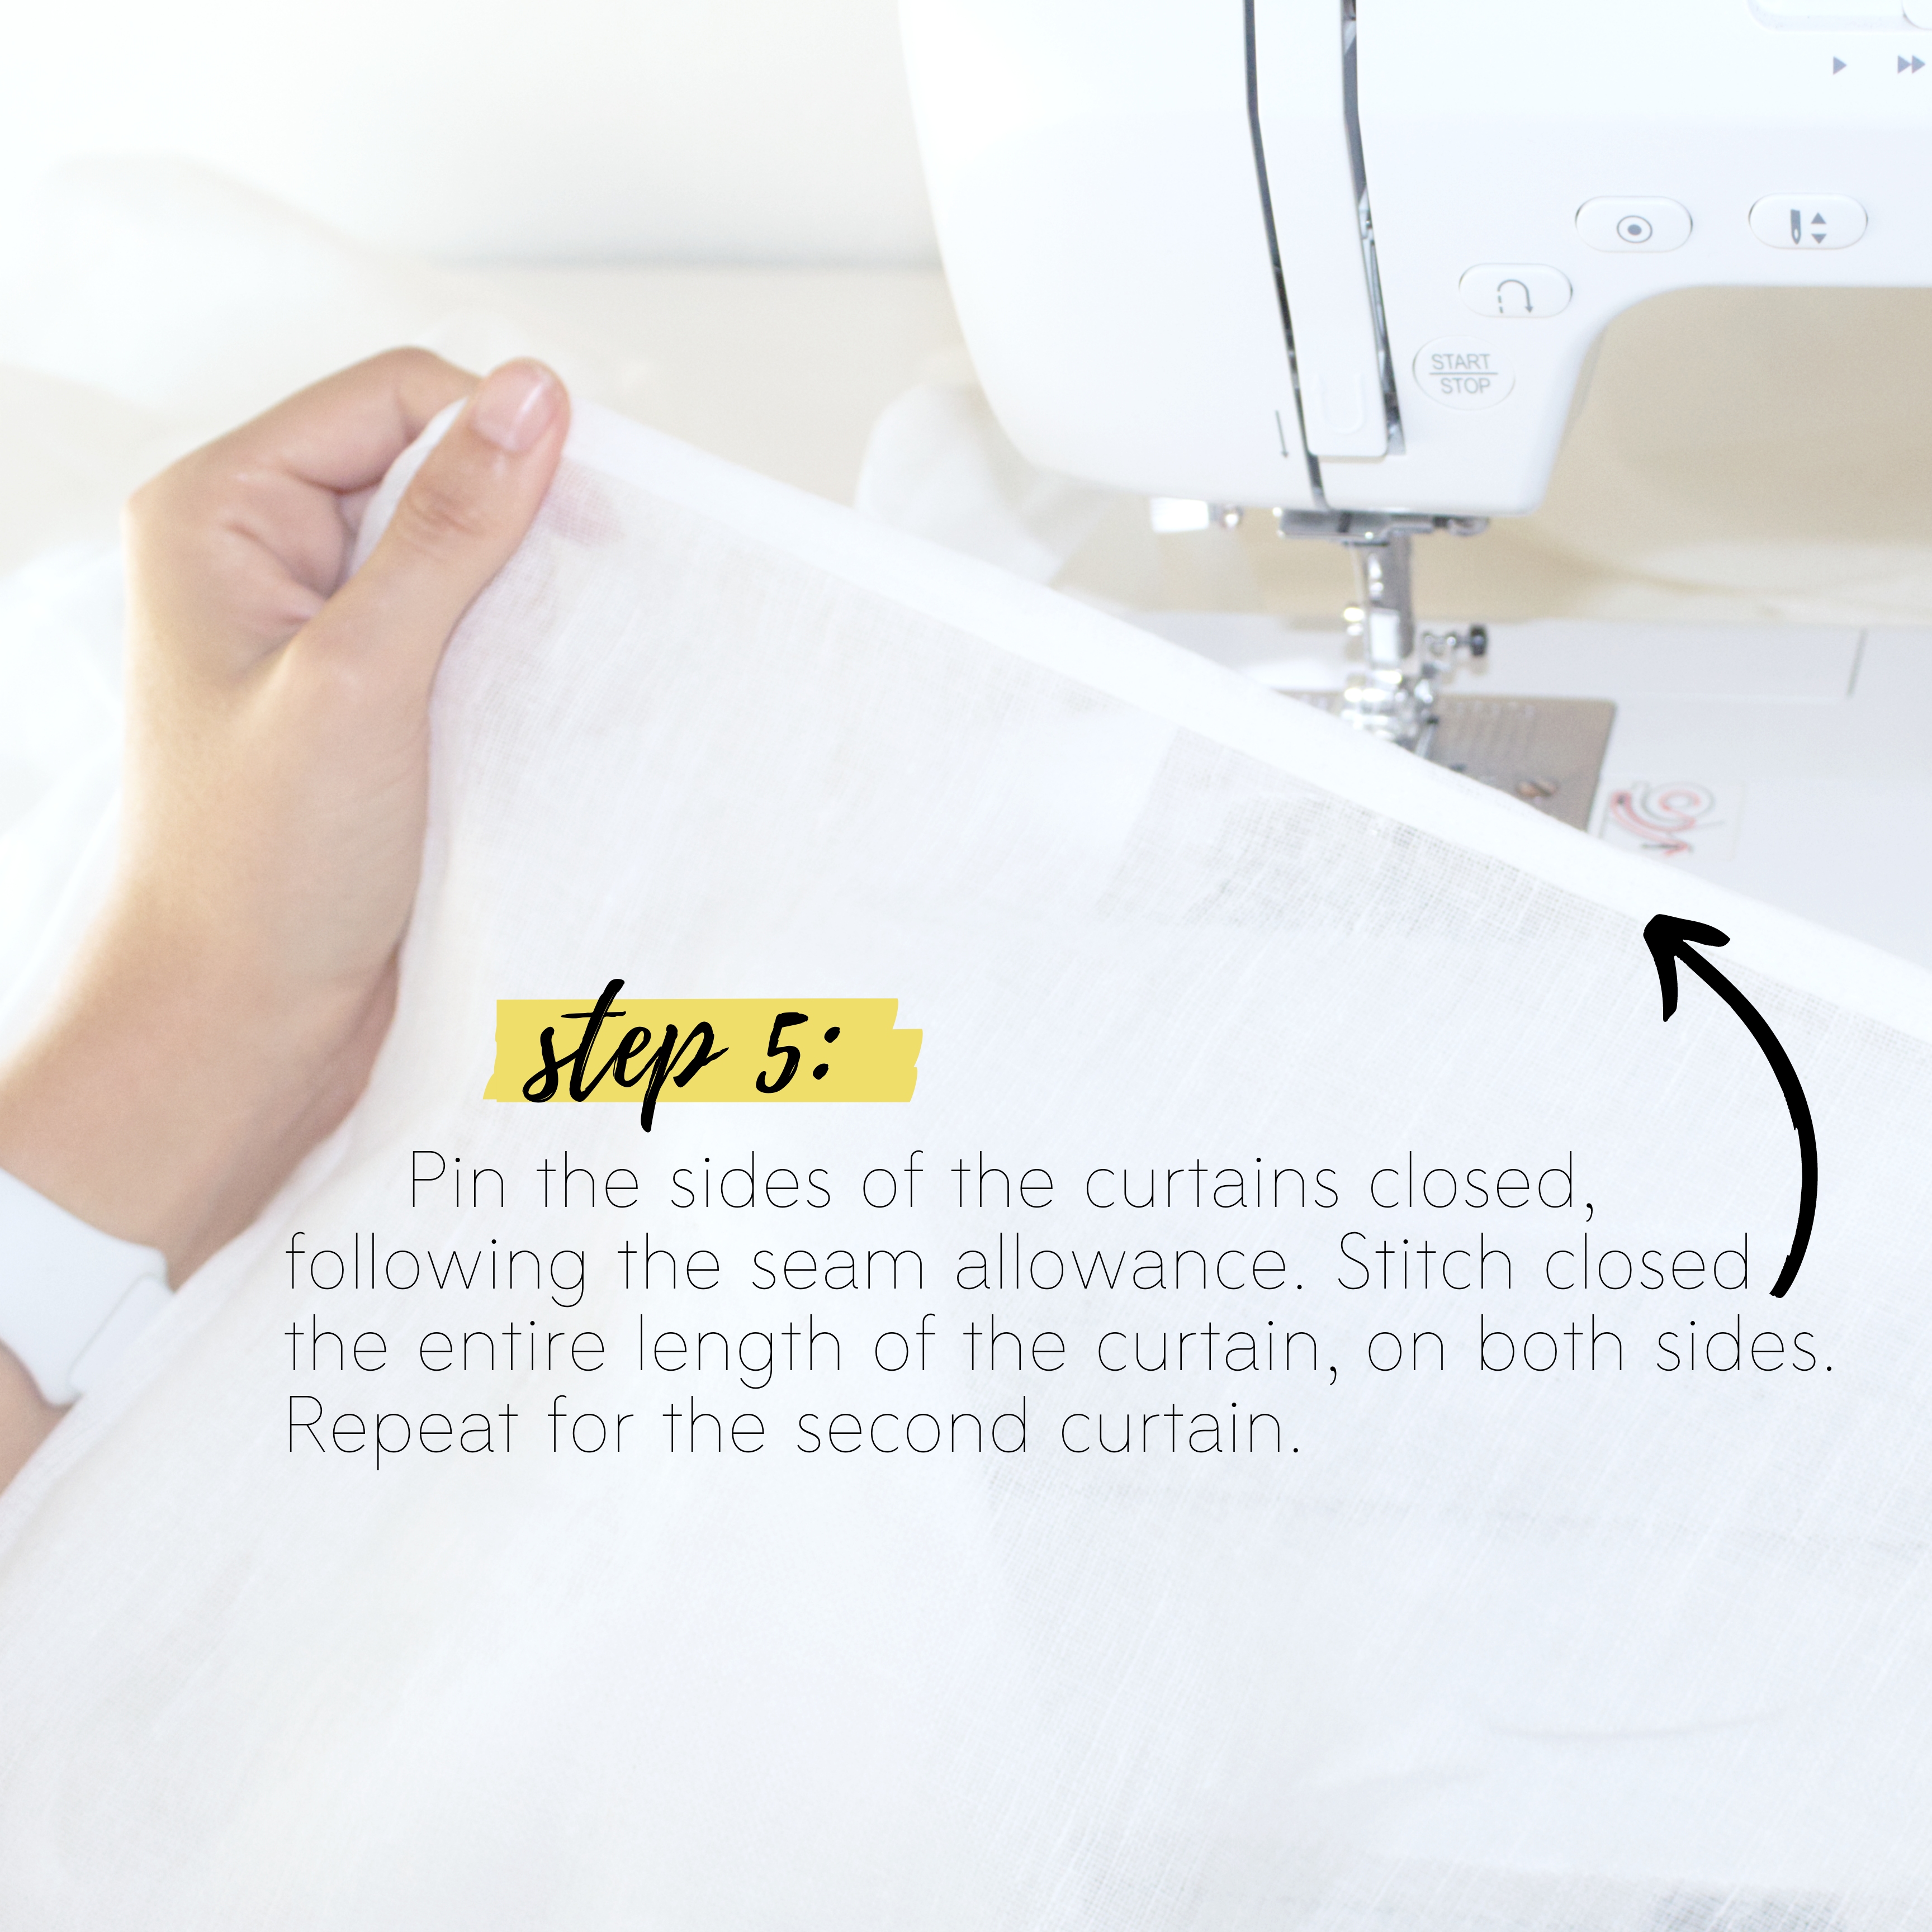 How to sew easy curtains DIY sewing tutorial: Step 5